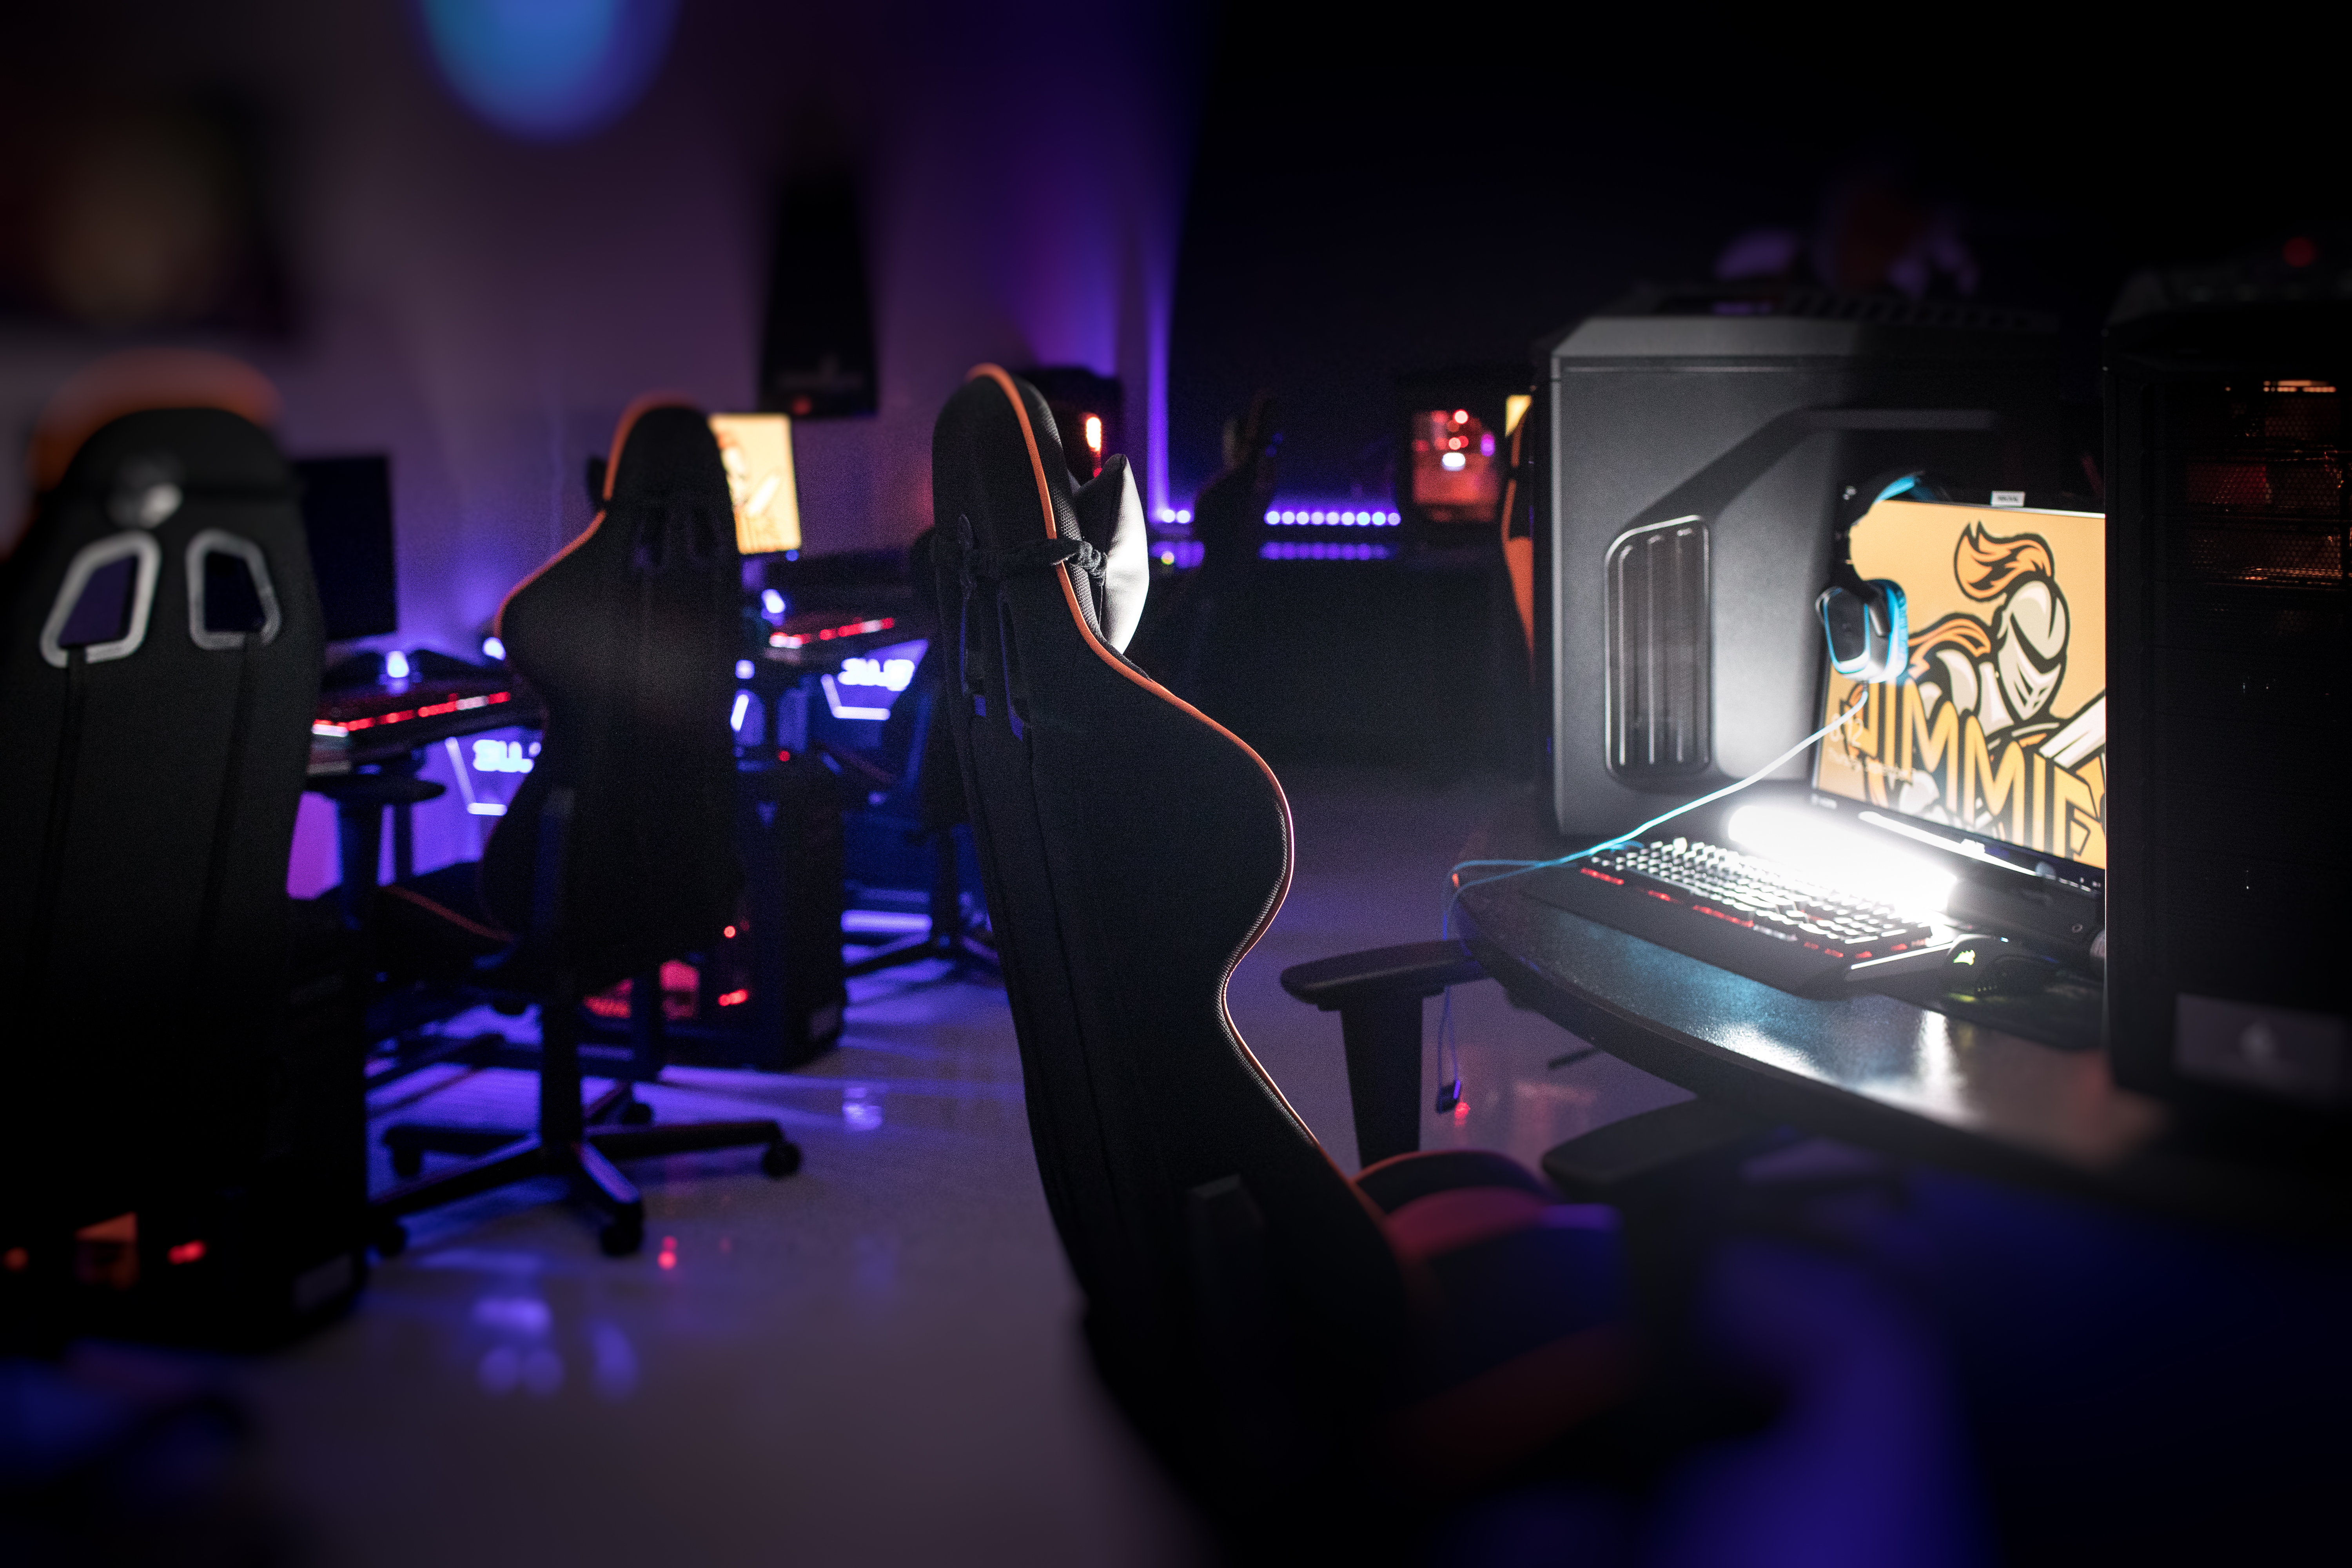 The esports program at the University of Jamestown in North Dakota took over a facility that had been used by the university's defunct TV and radio stations.